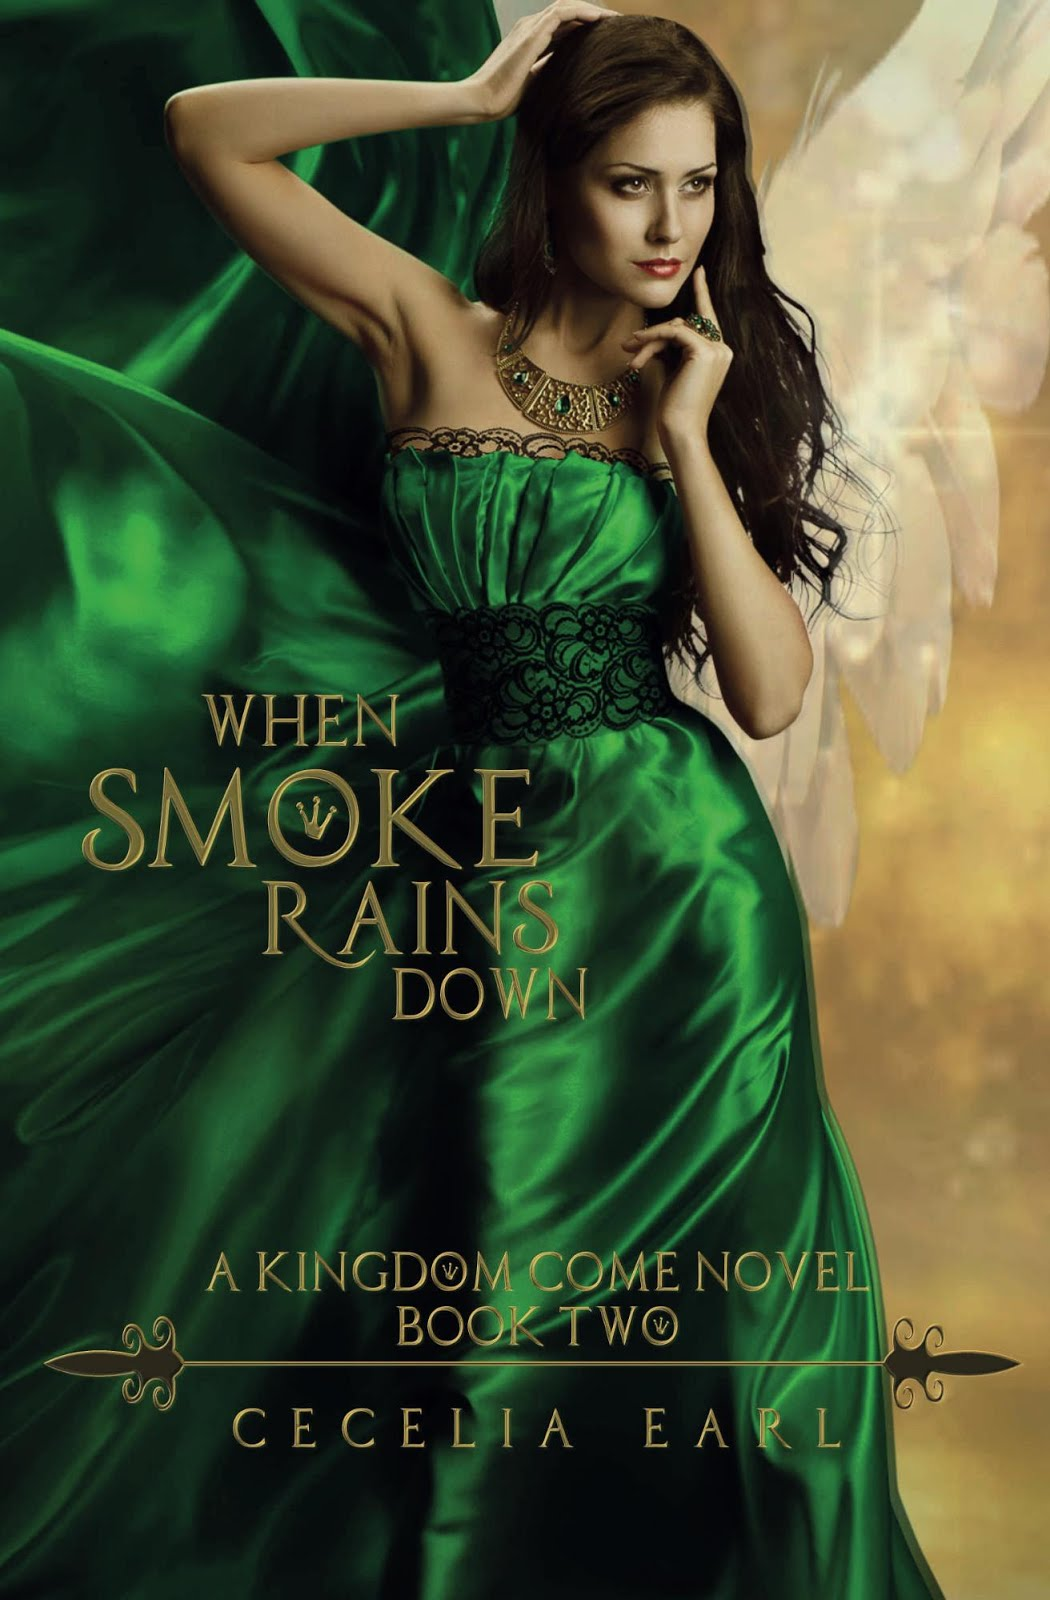 When Smoke Rains Down is available now!